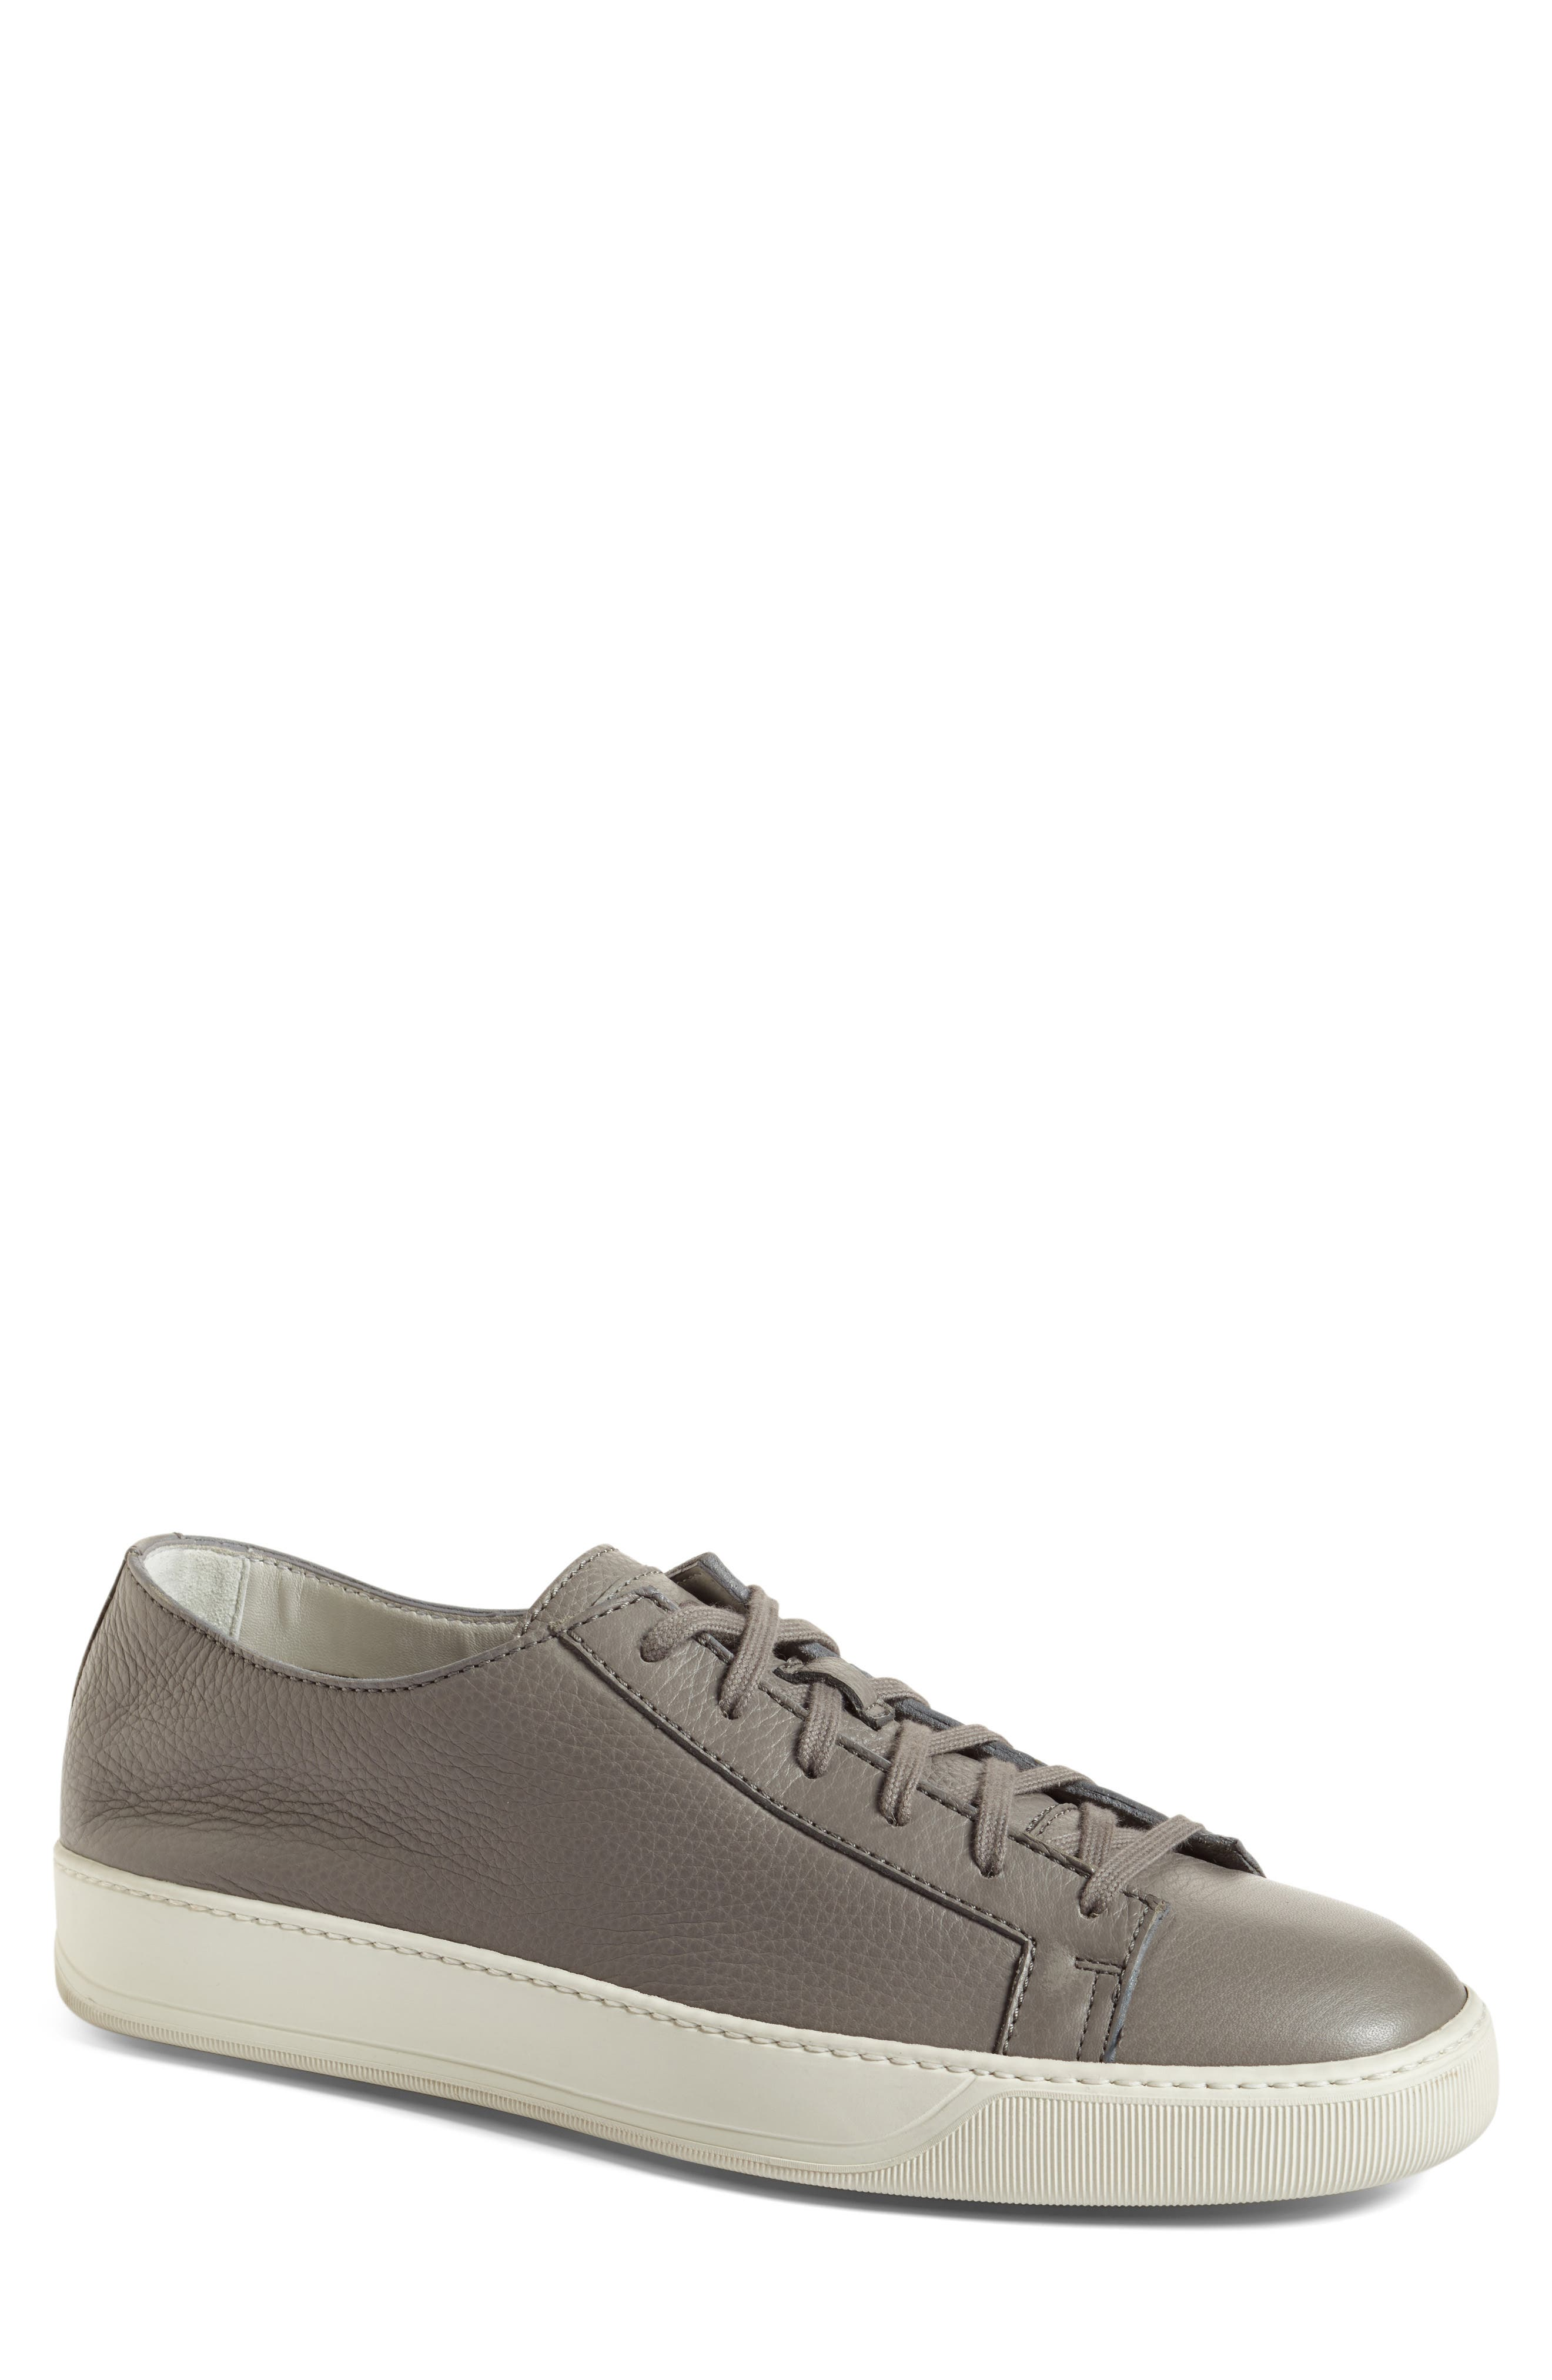 Cleanic Sneaker,                         Main,                         color, Grey Leather